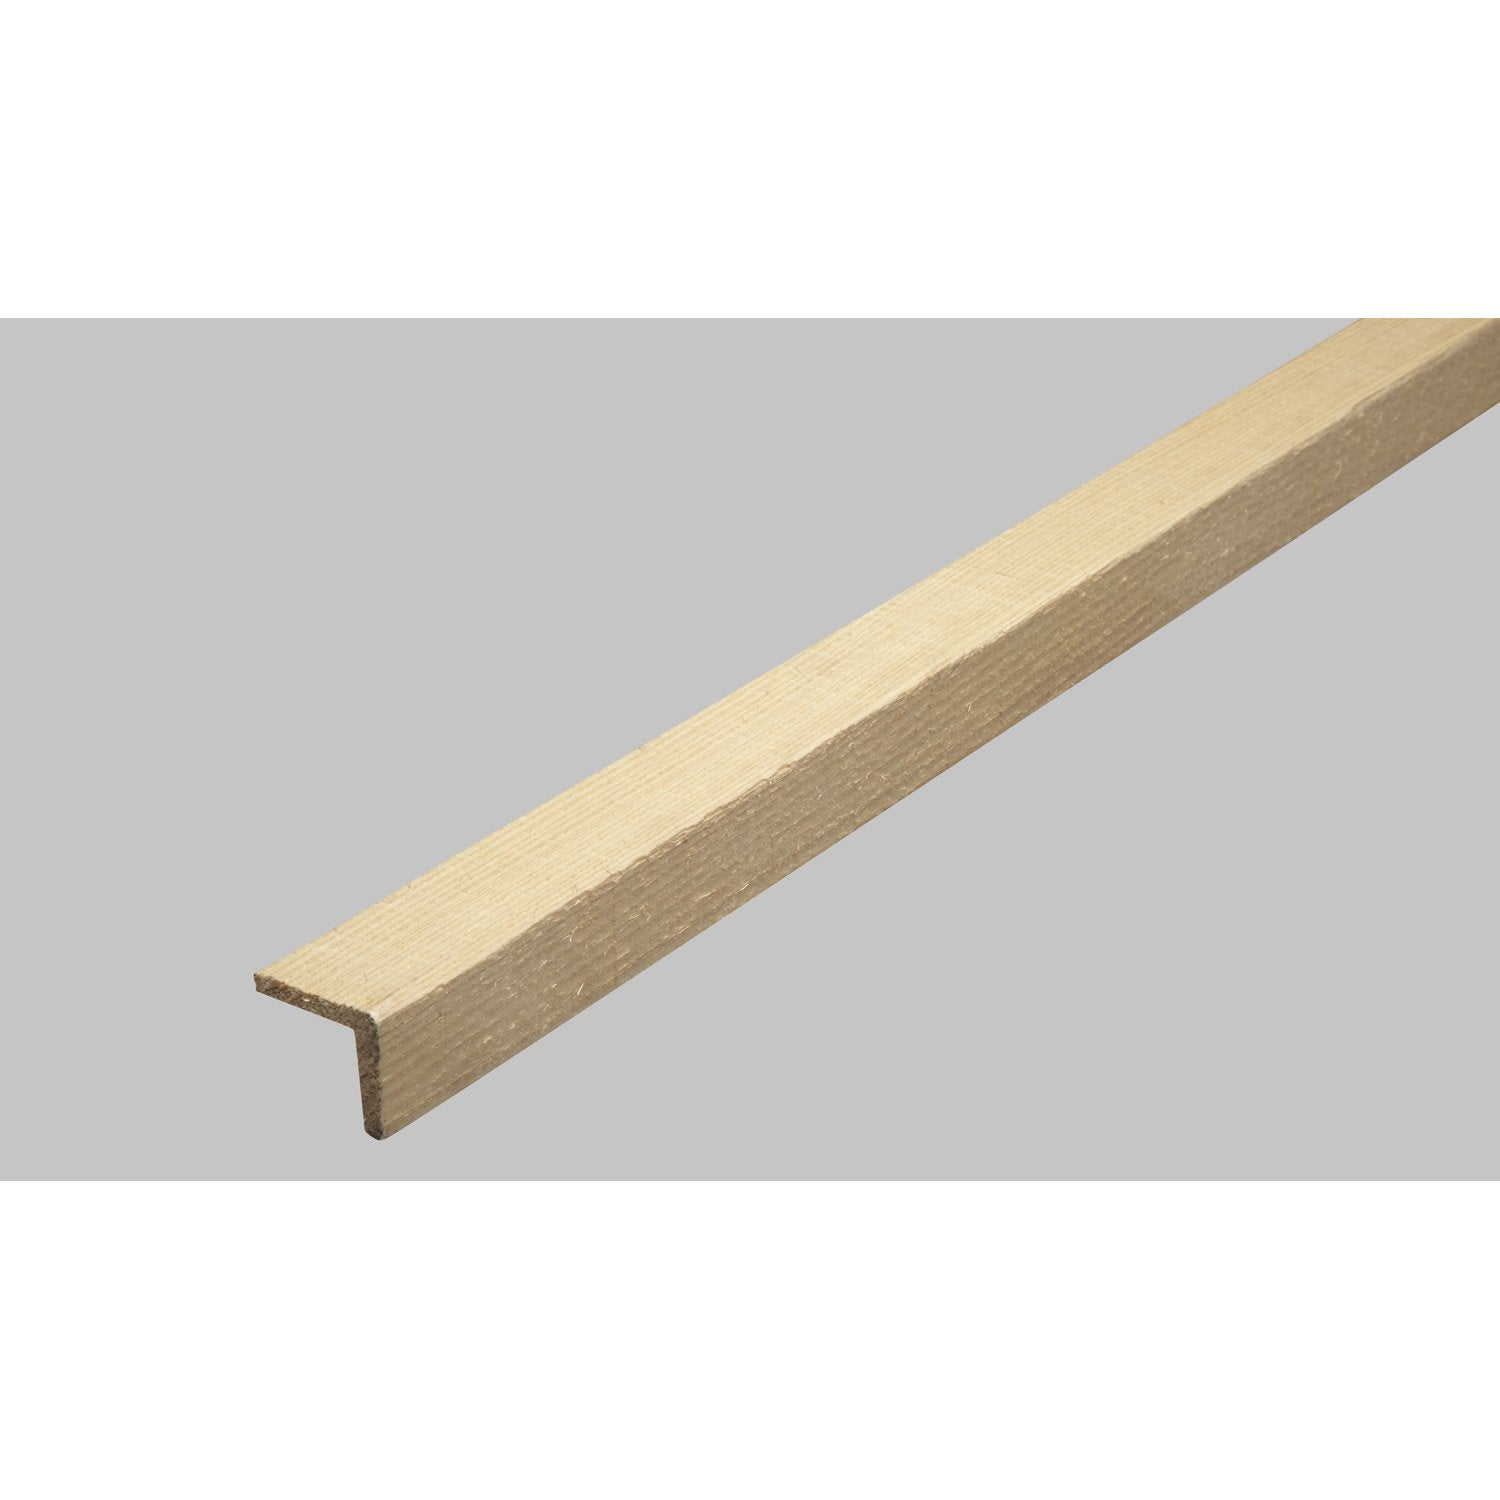 baguette d 39 angle en sapin long 250cm section